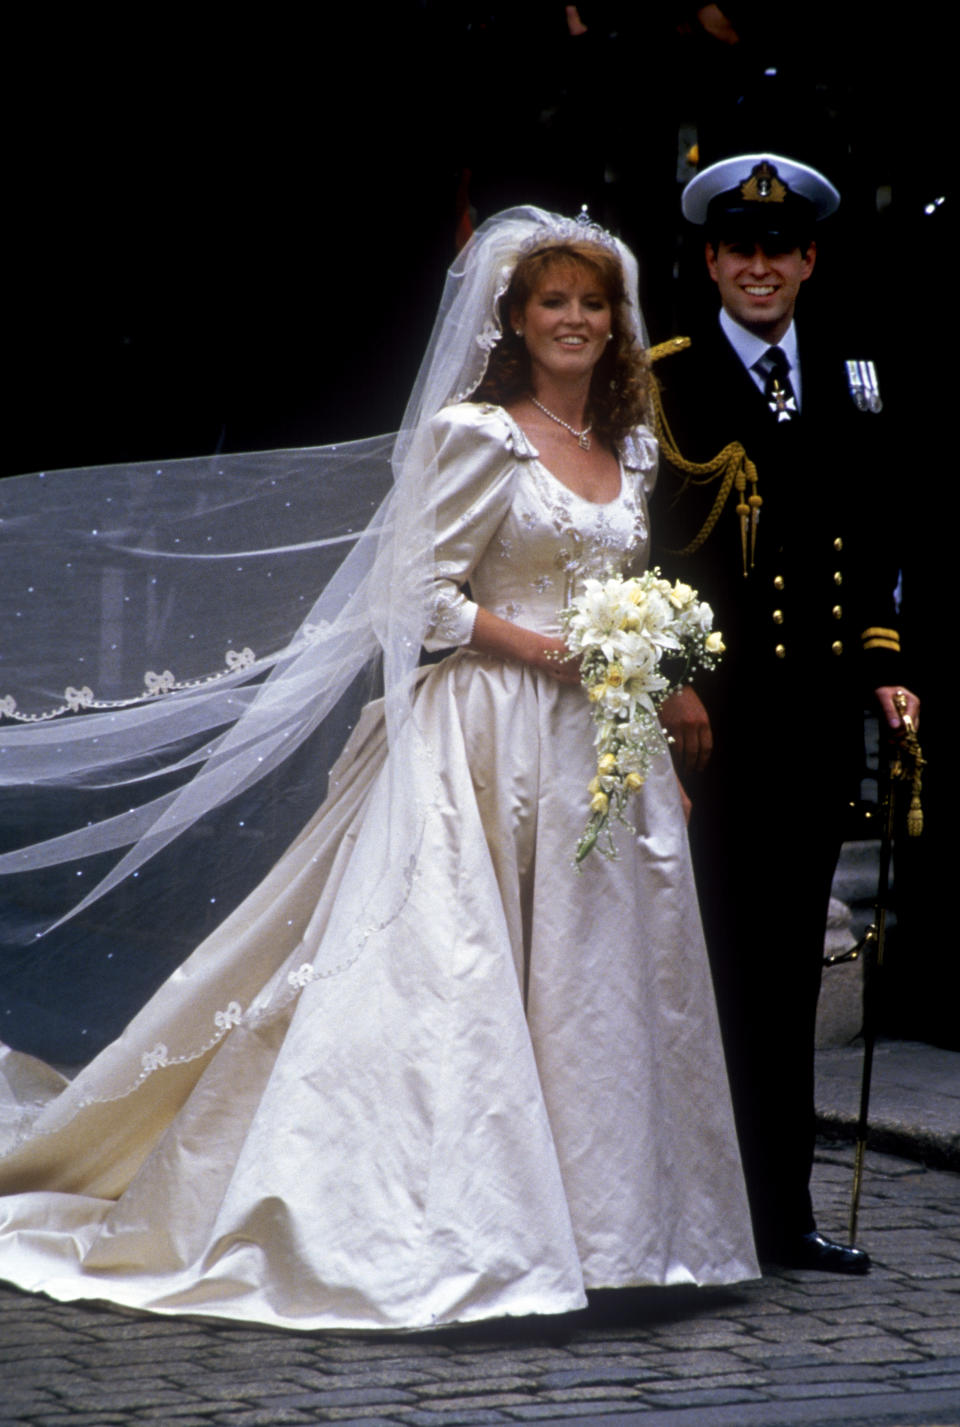 Fergie and Prince Andrew married in 1986. [Photo: Getty Images]